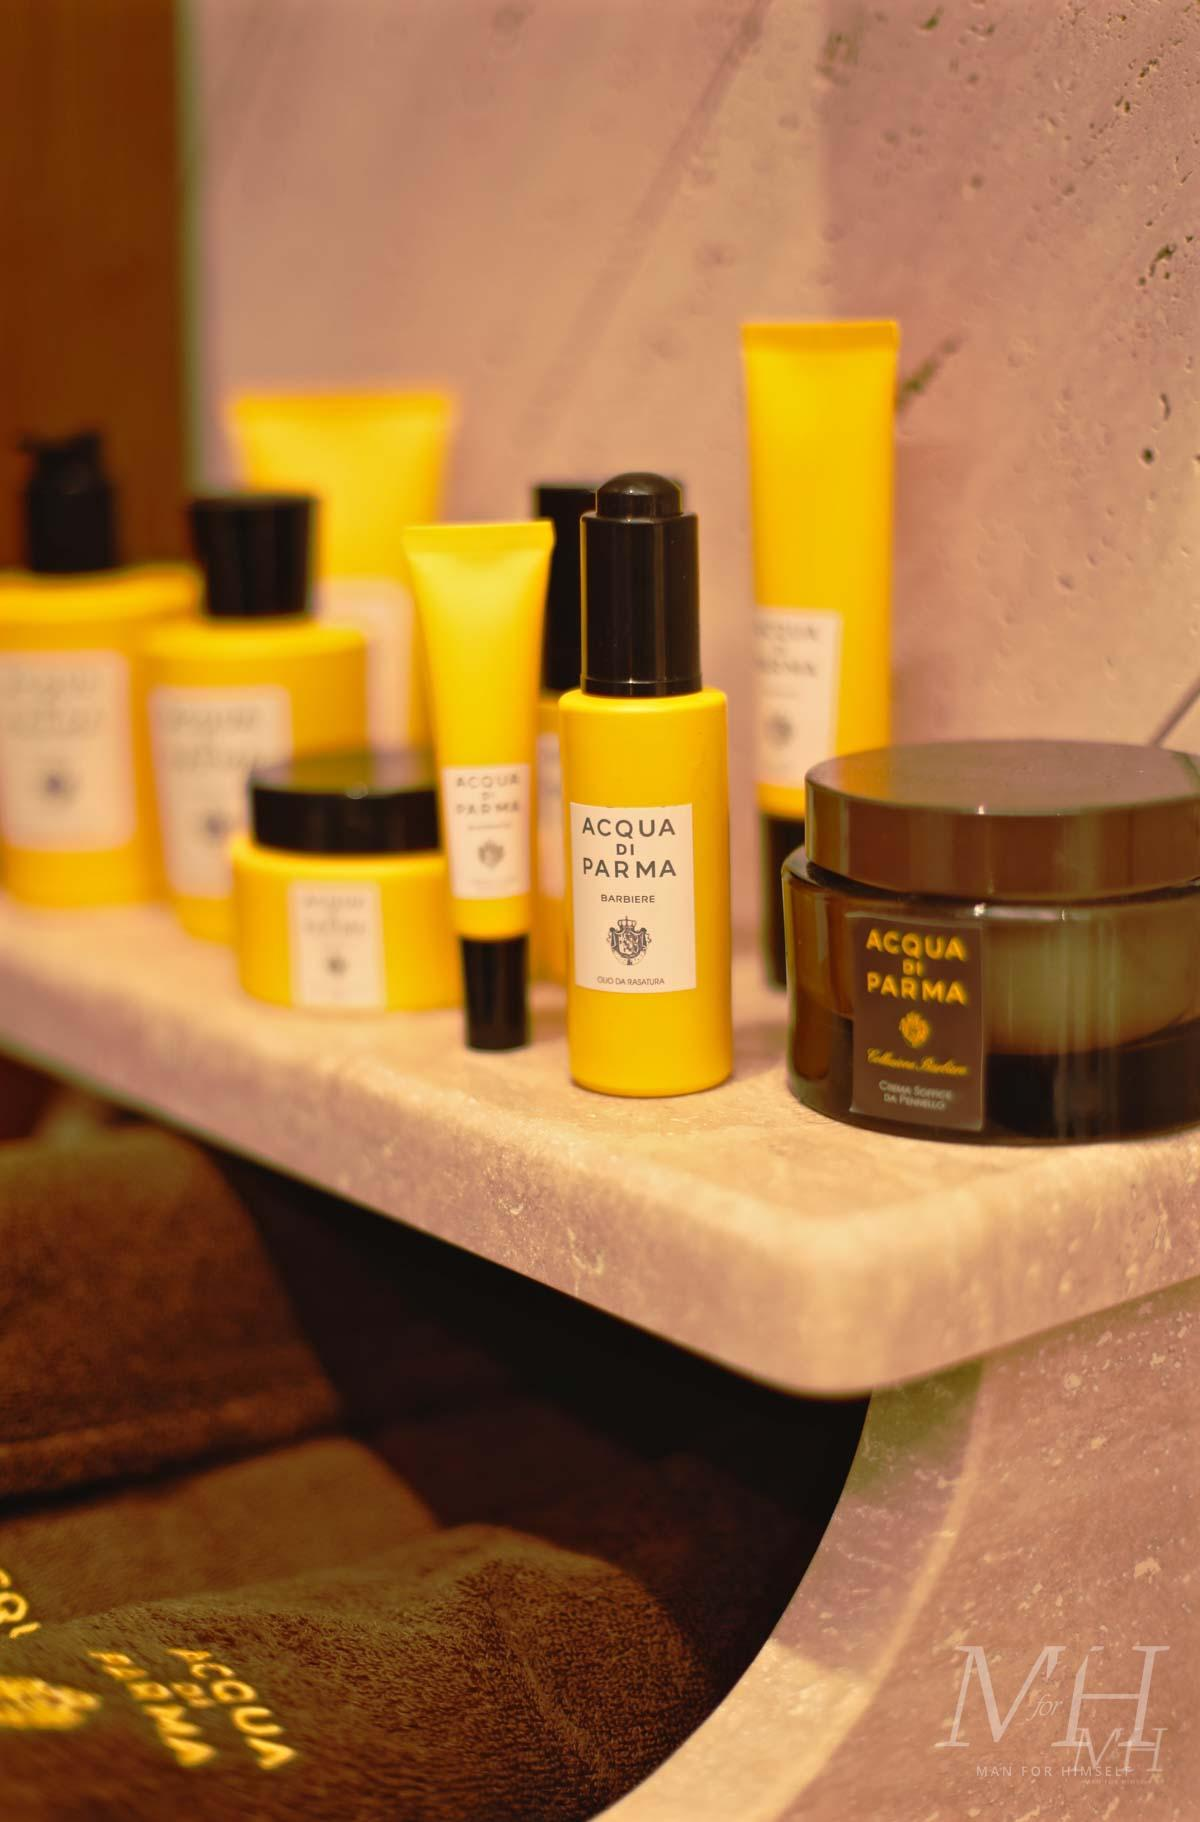 acqua-di-parma-uk-barbershop-man-for-himself-12